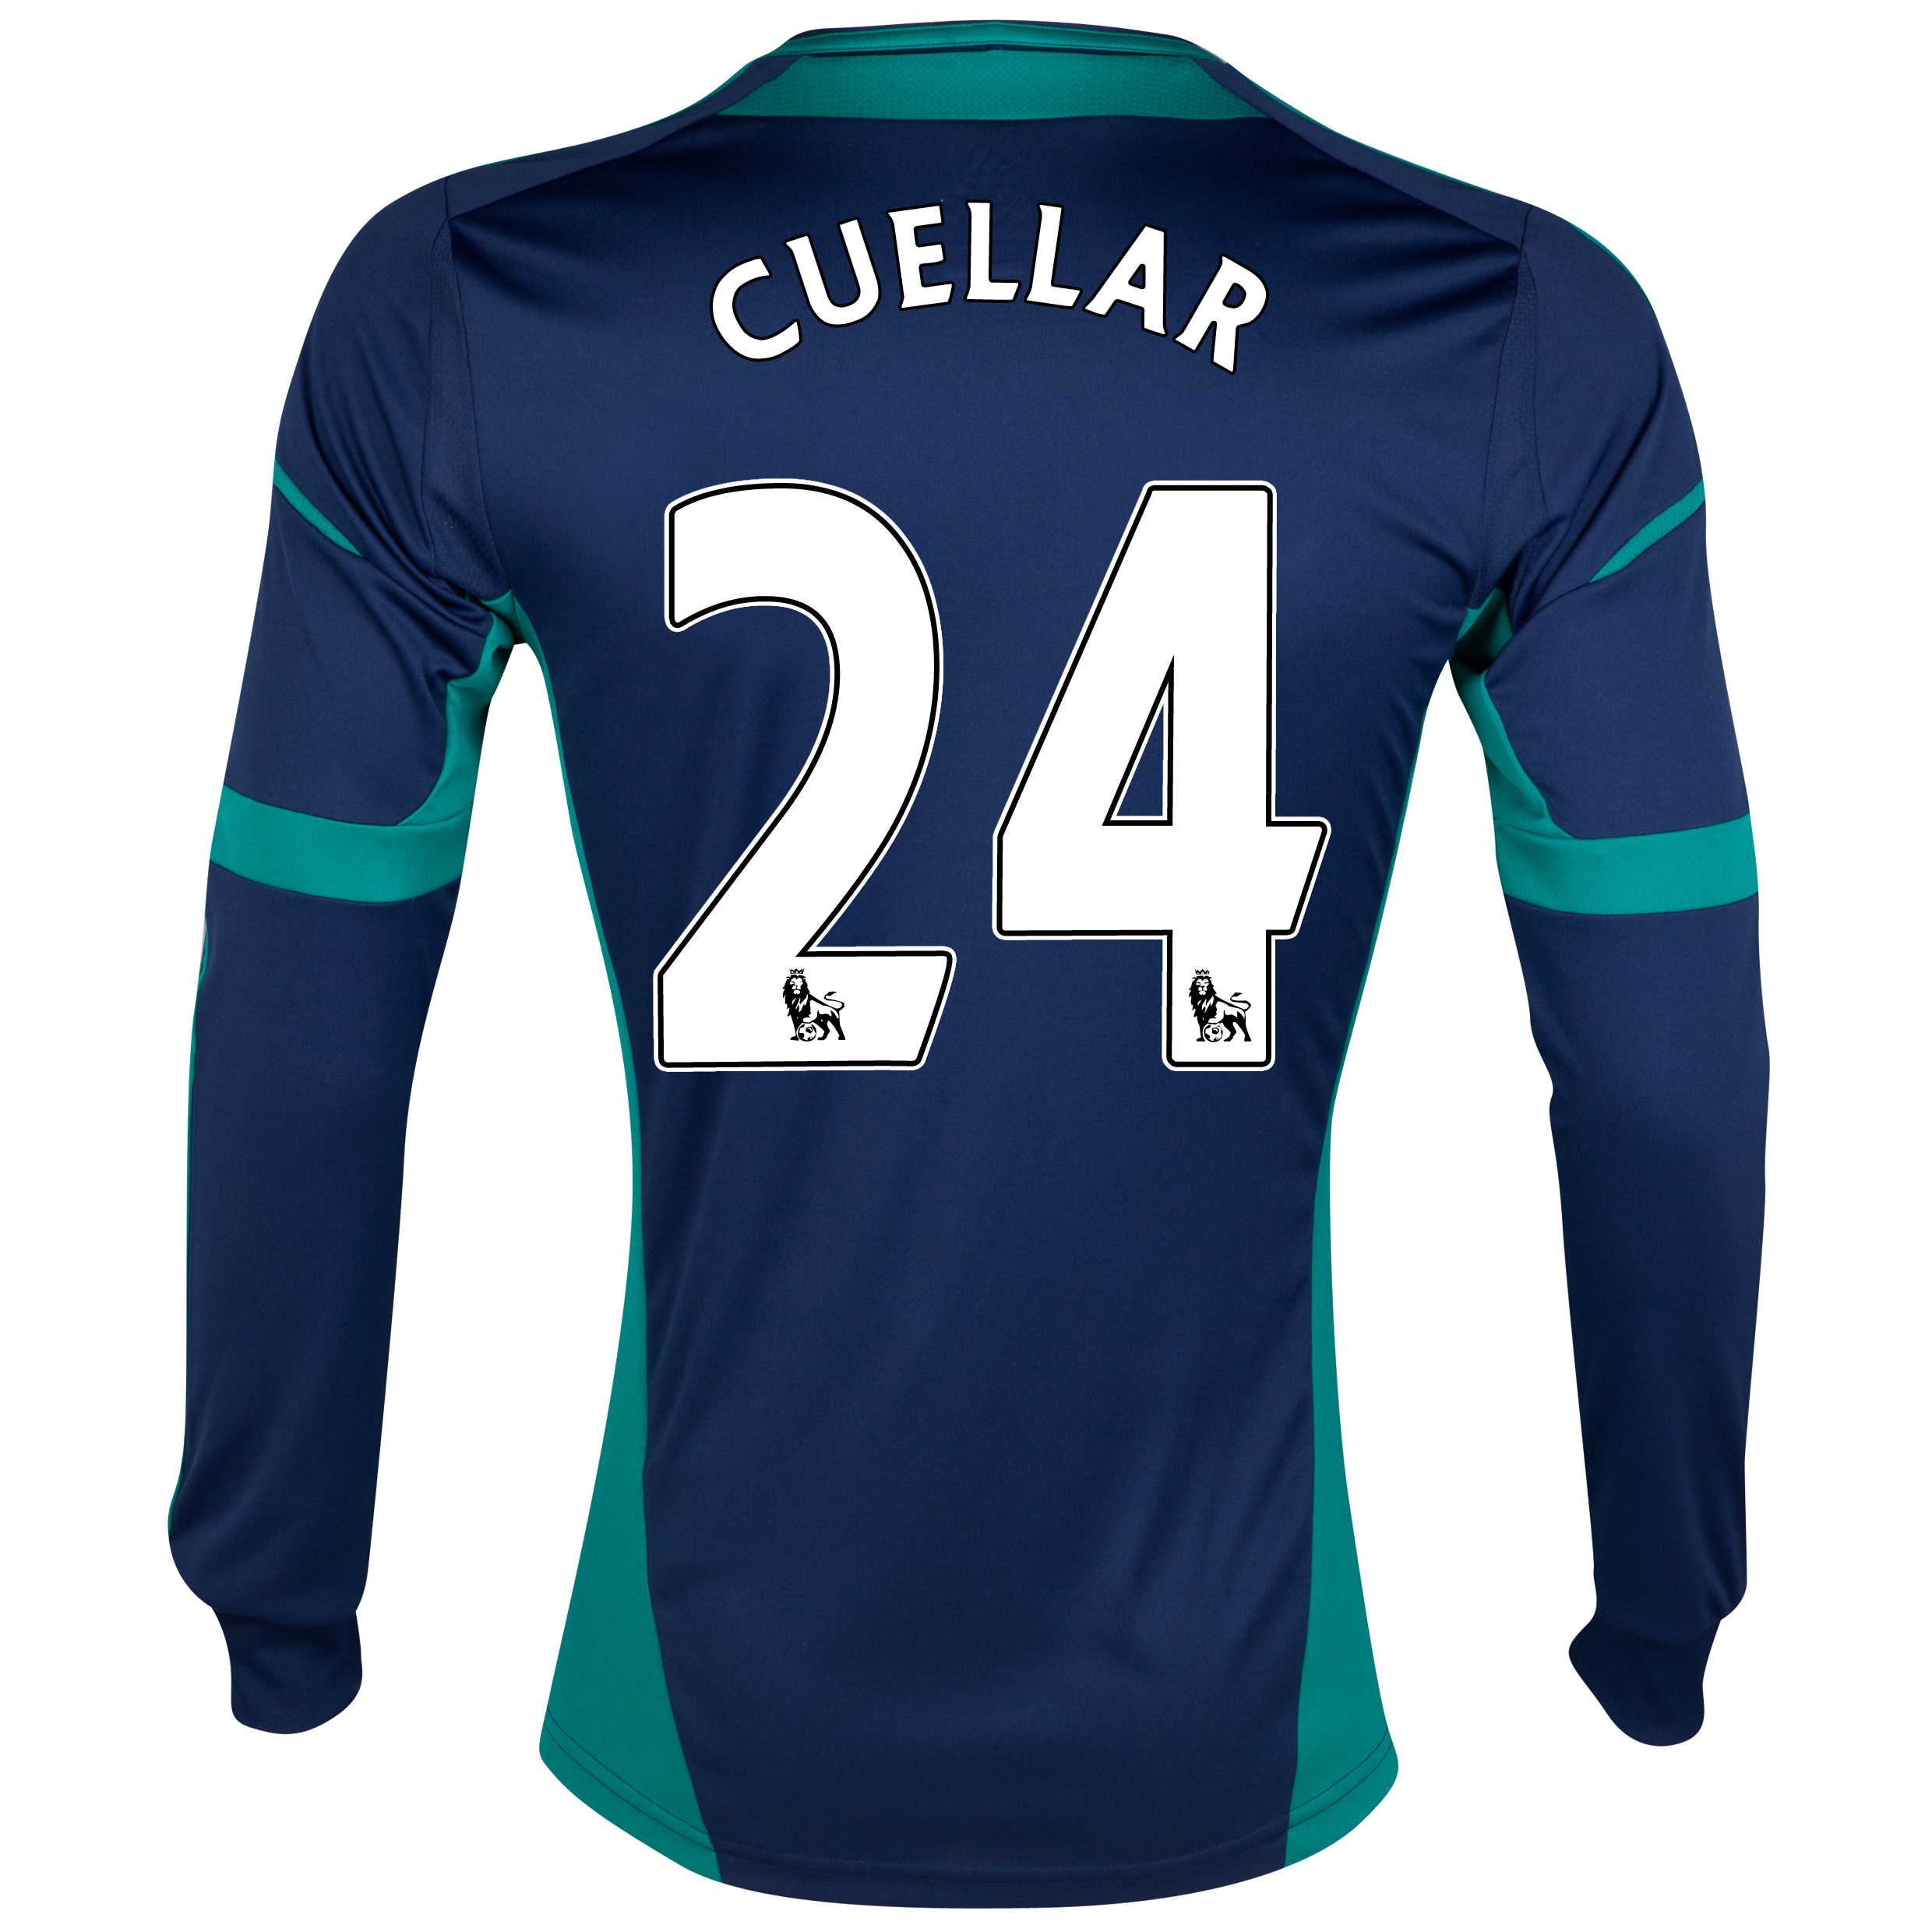 Sunderland Away Shirt 2012/13 - Long Sleeved with Cuellar 24 printing